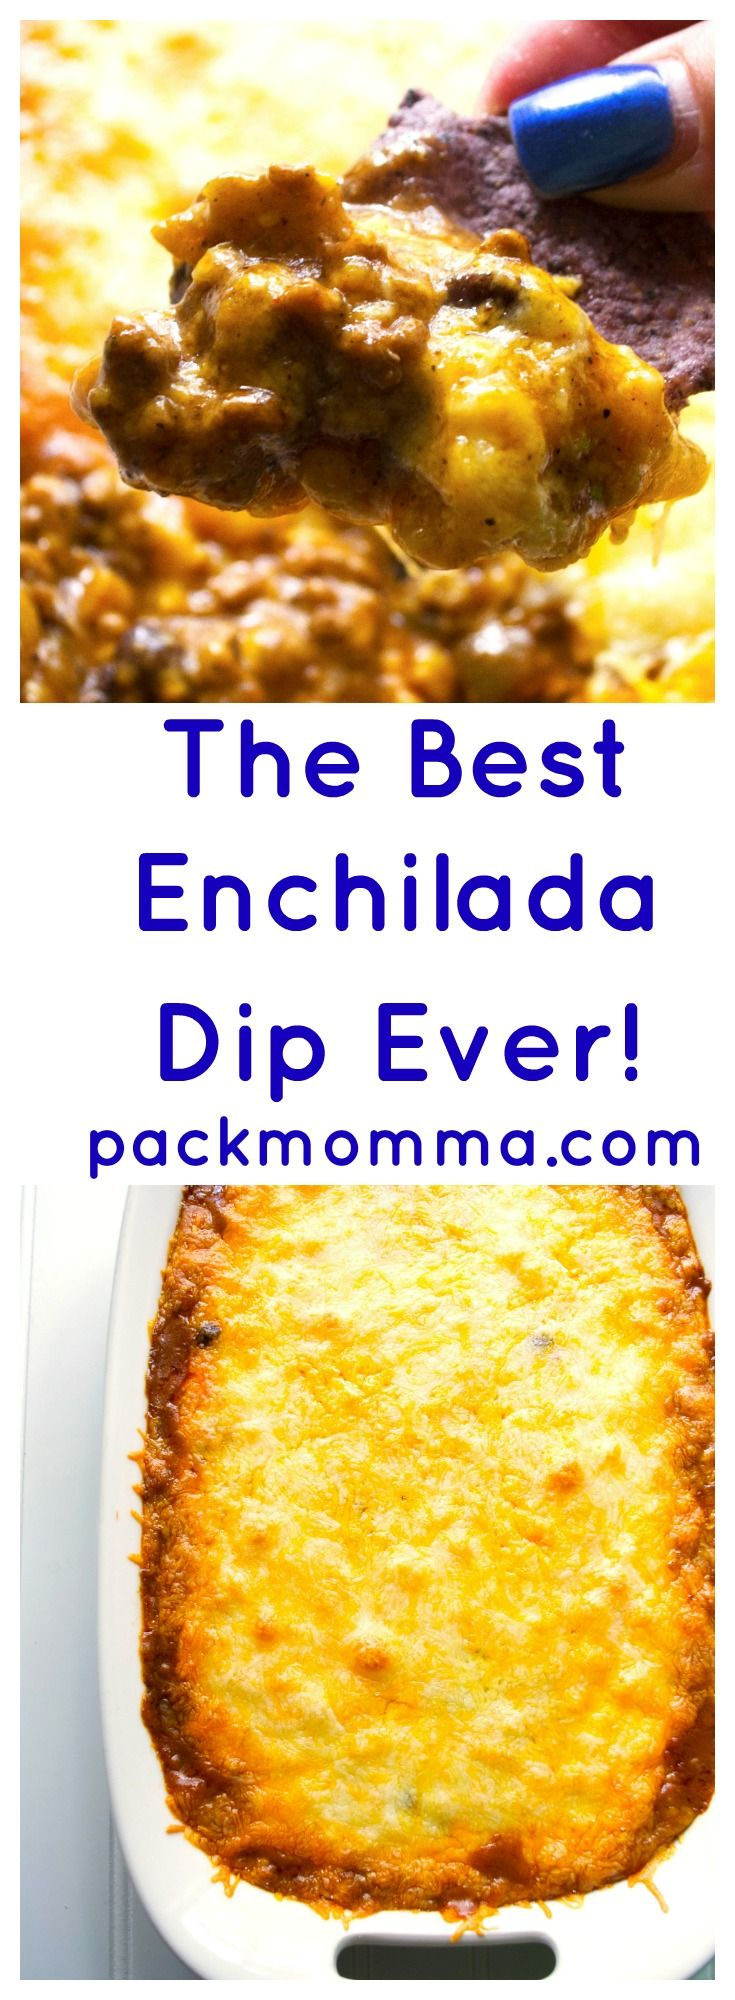 Kick up your tailgating with The Best Enchilada Dip Ever. Spicy and delicious this is the perfect dip to cheer your teams on to victory.